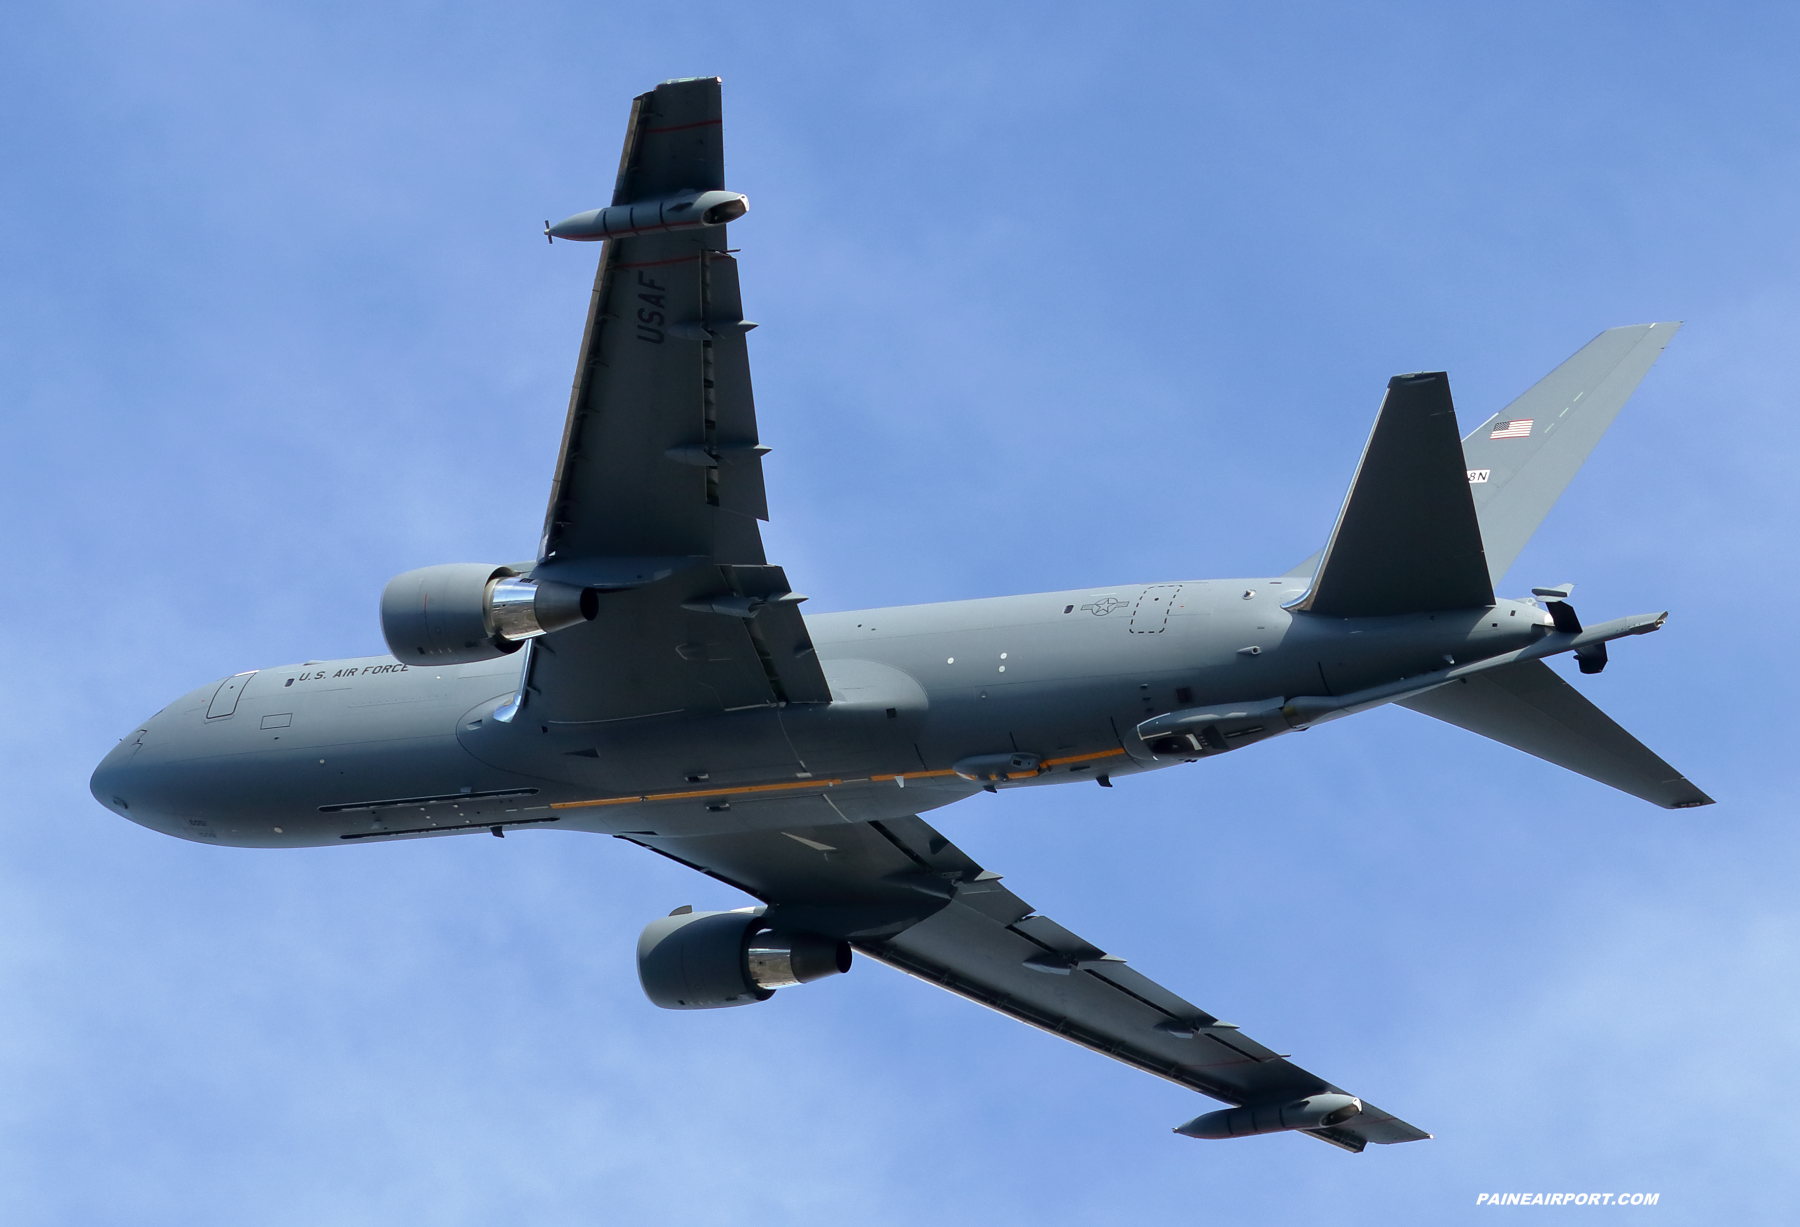 KC-46A 18-46051 at Paine Field